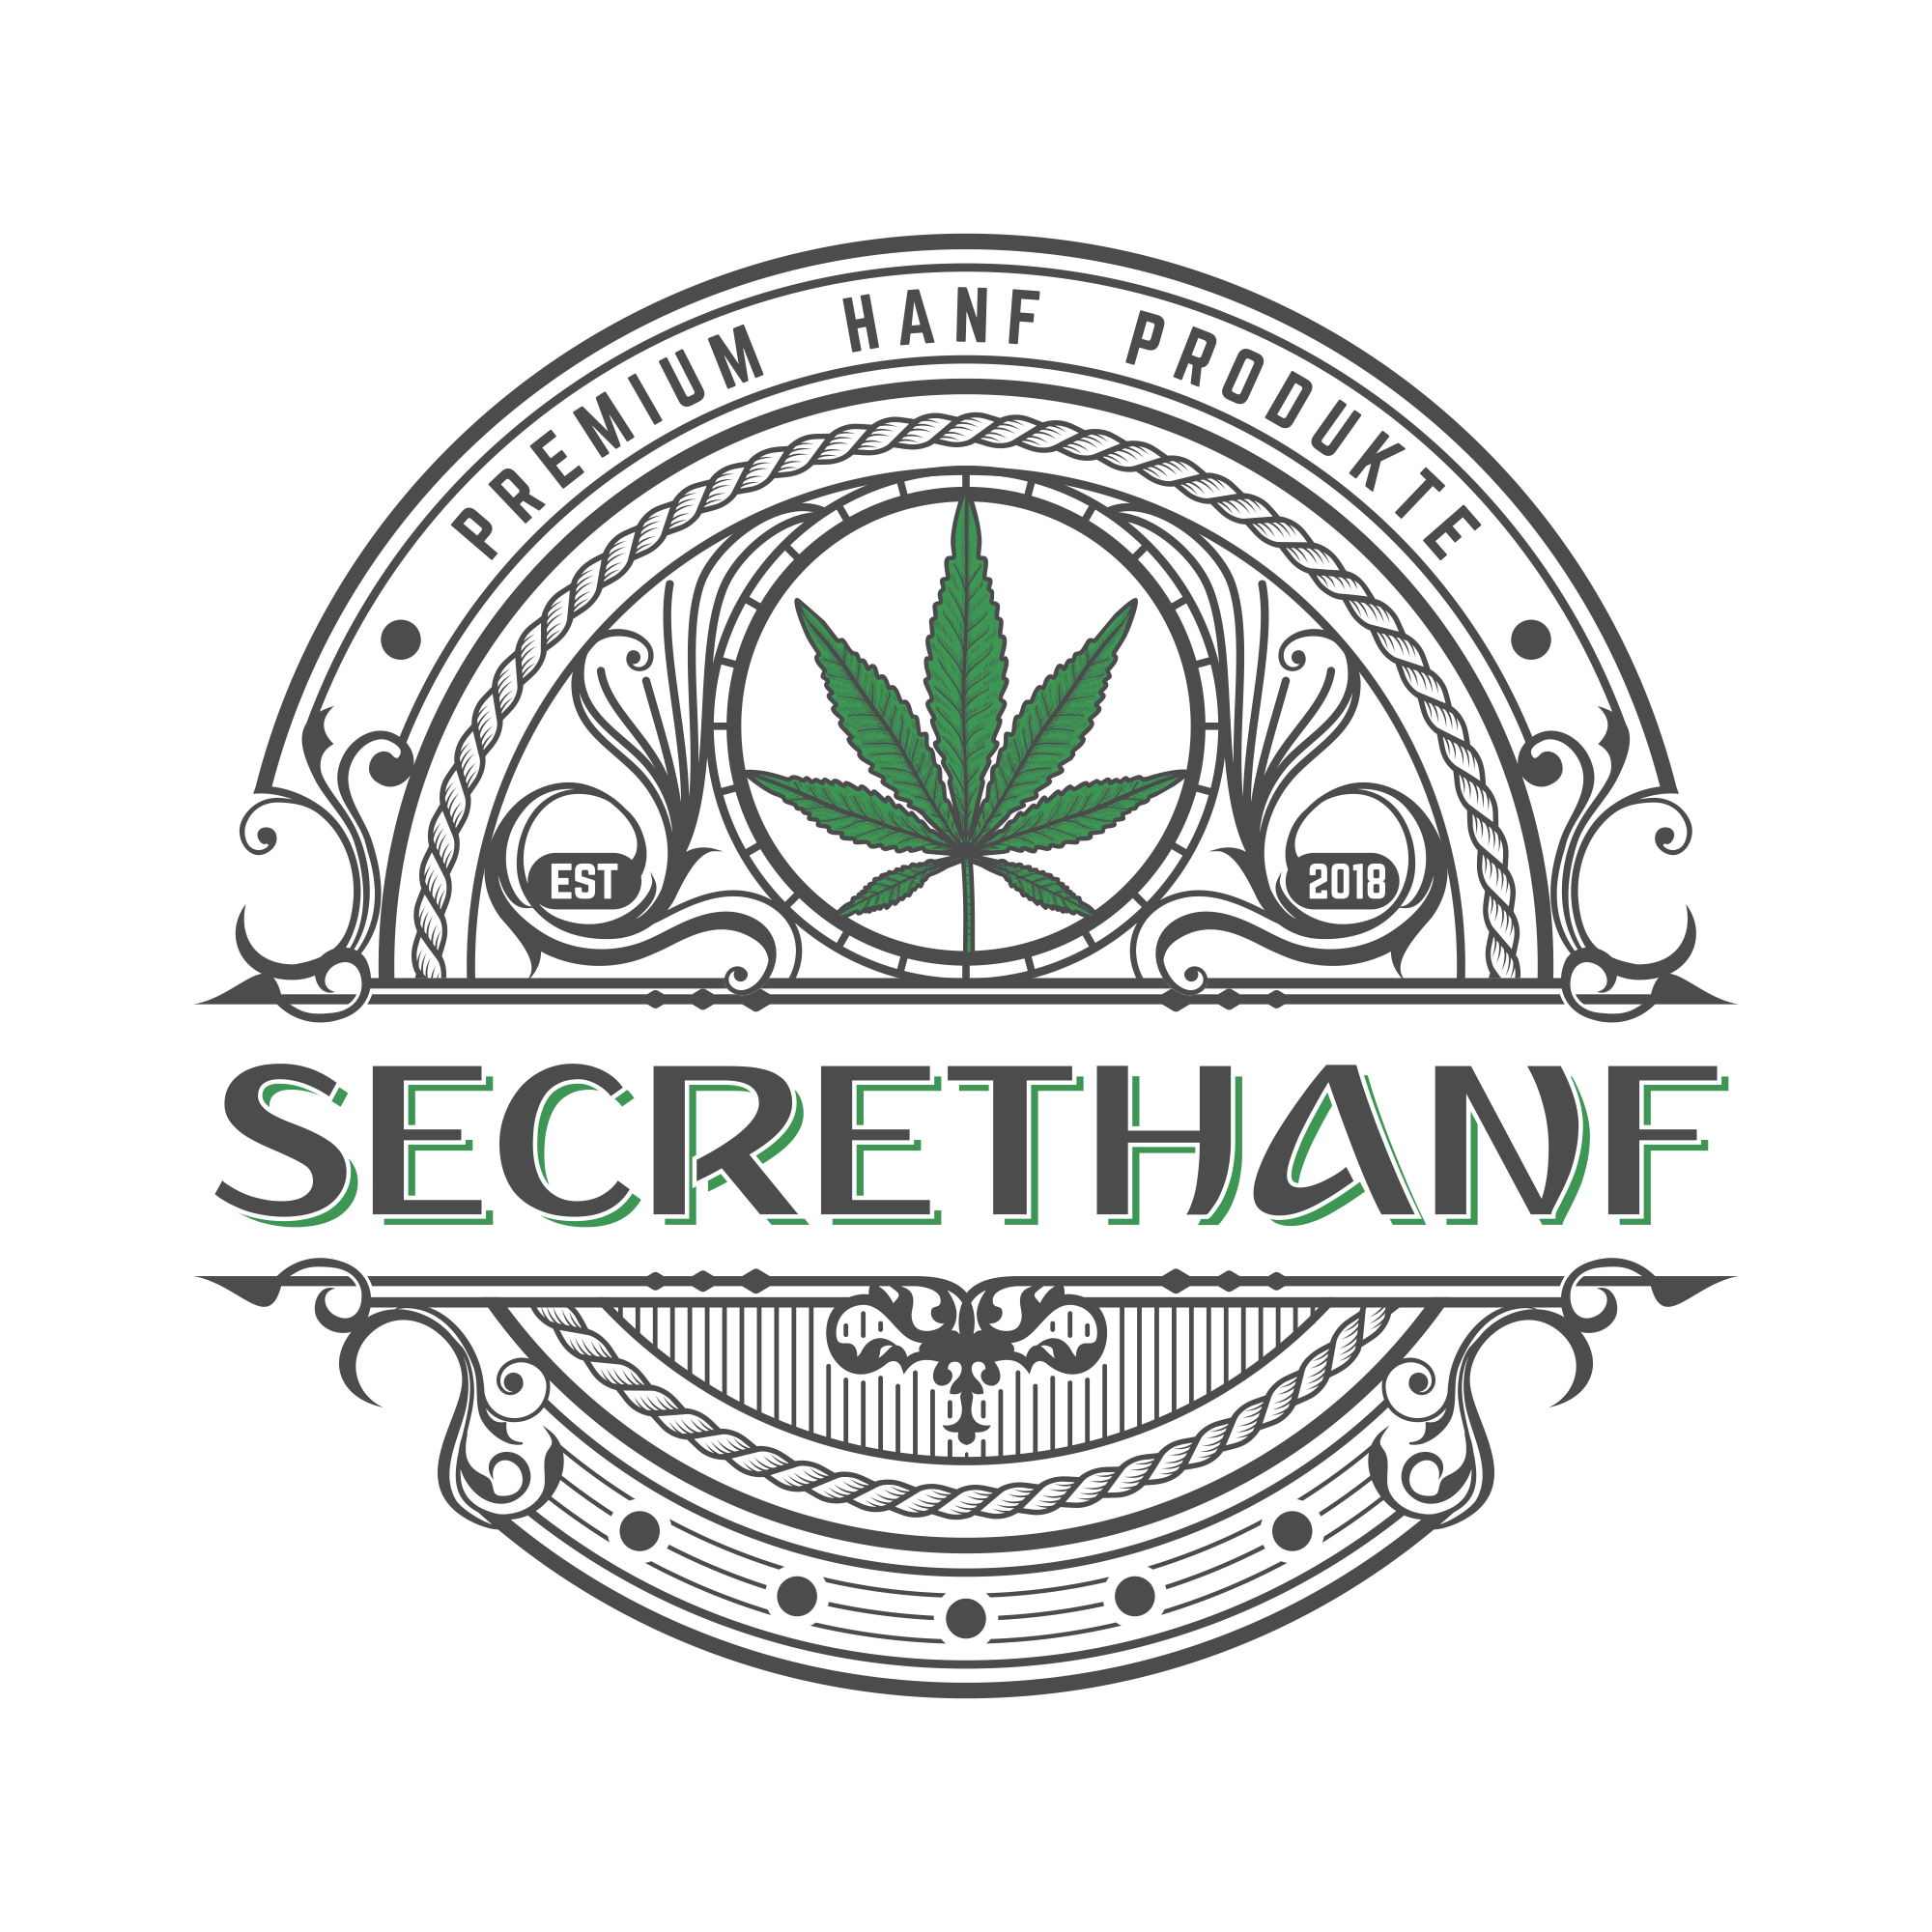 secrethanf , hemp & cbd Onlineshop needs modern logo